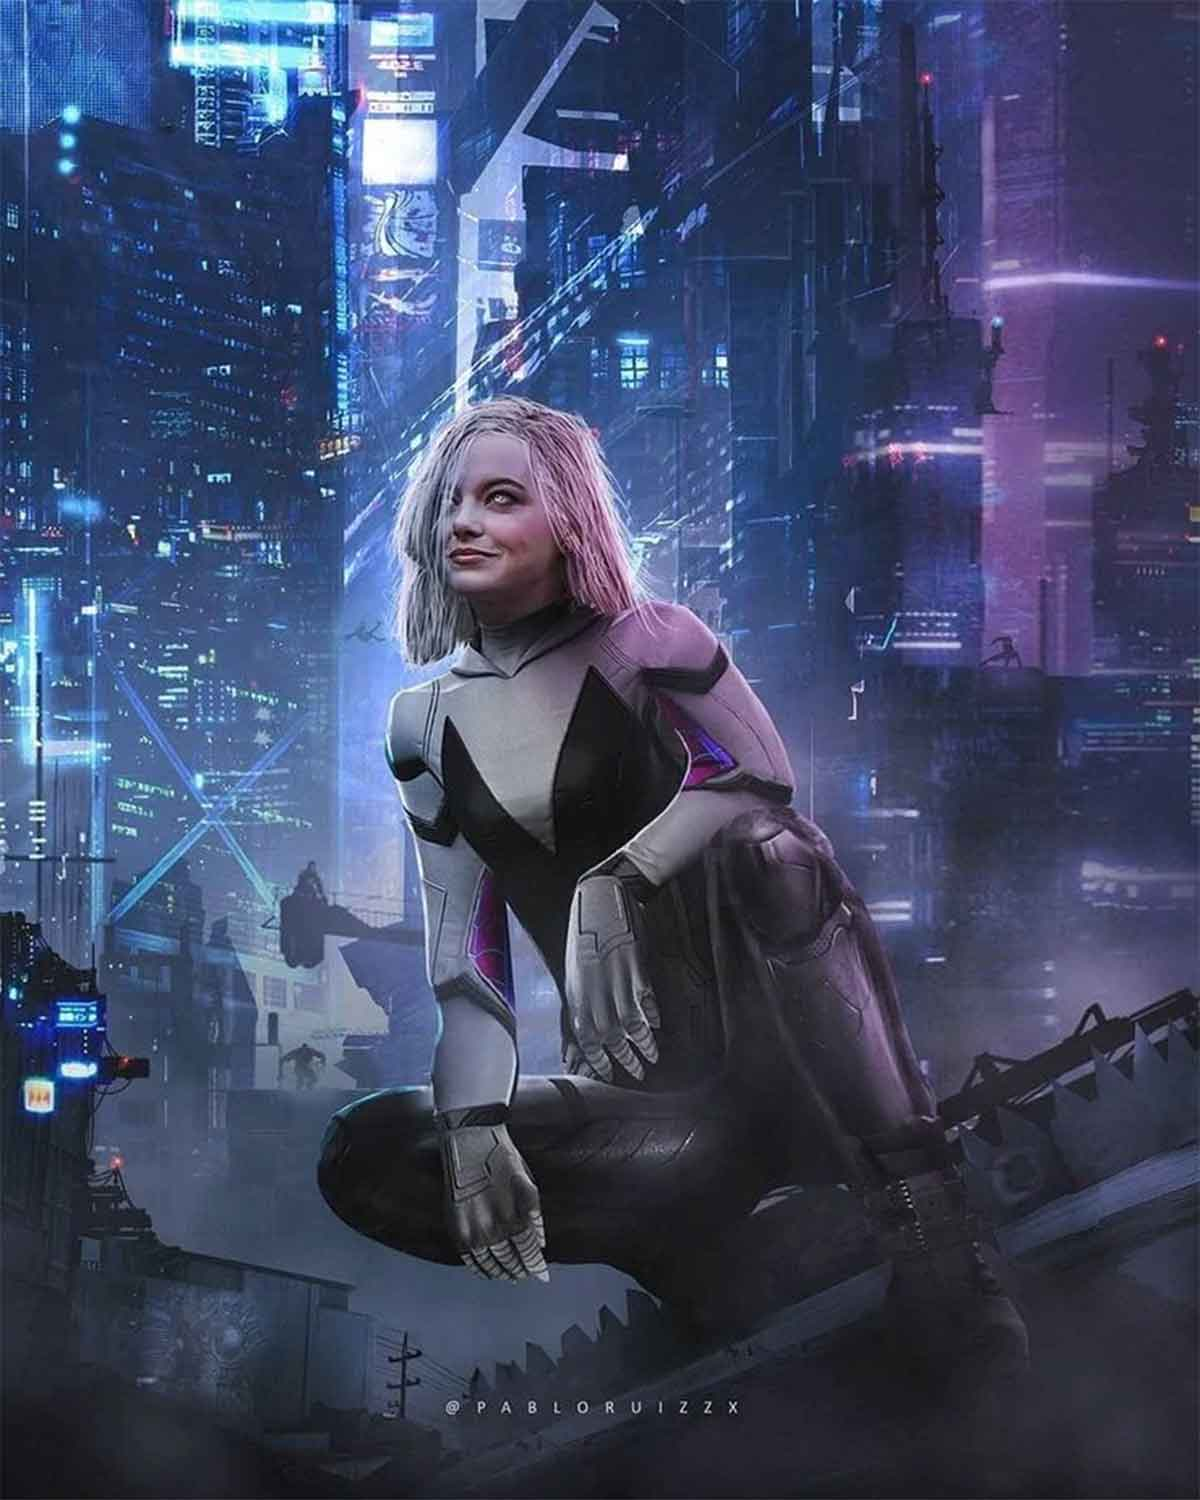 Spectacular Emma Stone Fan Art as Spider-Gwen